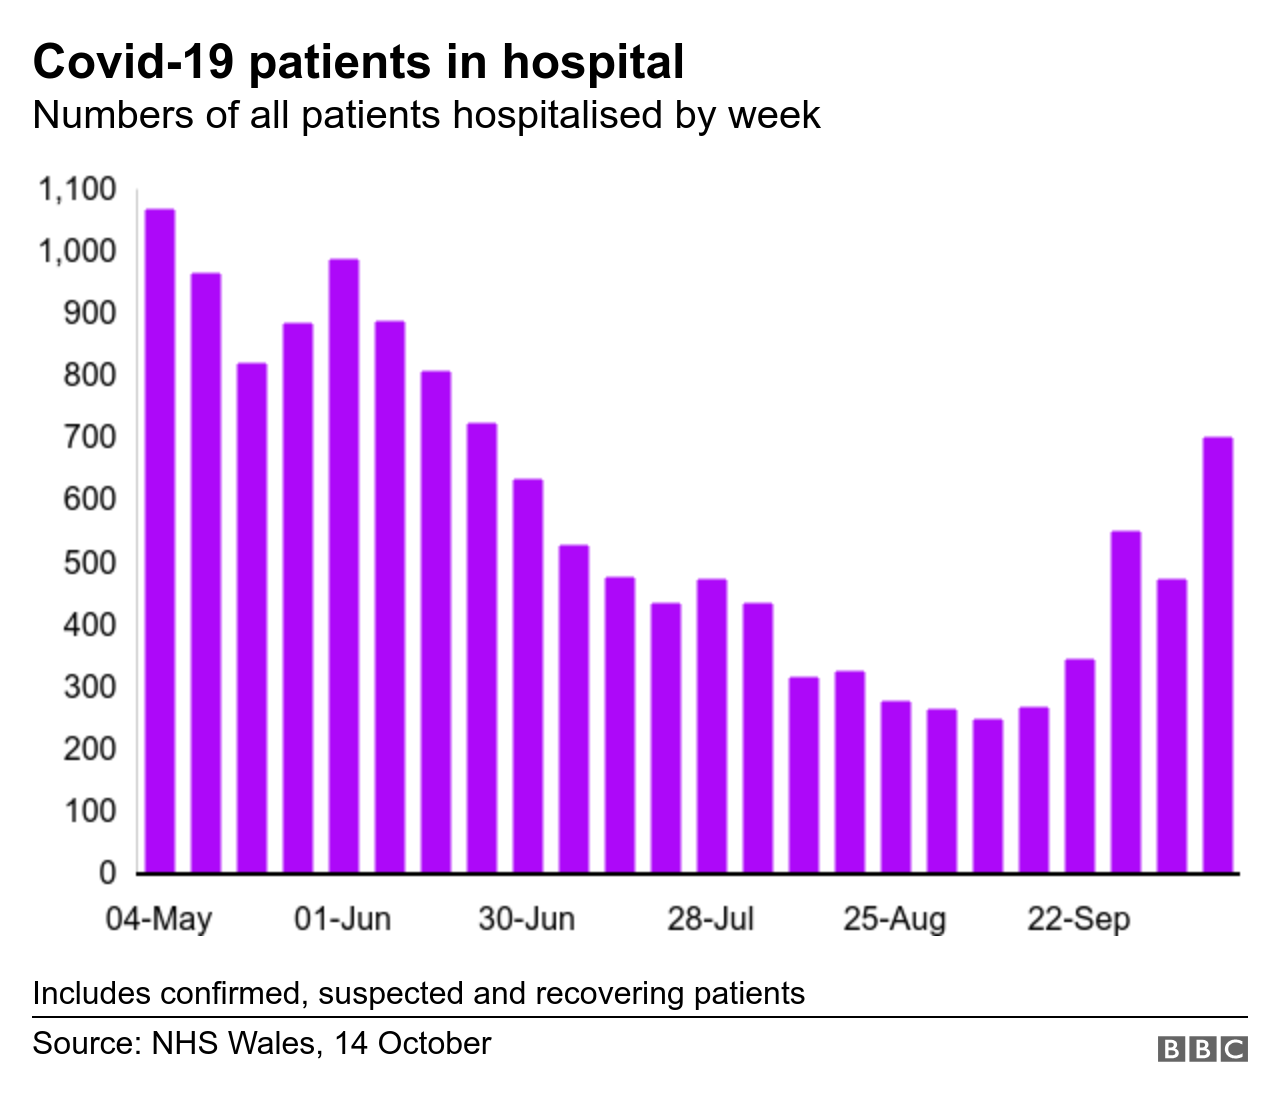 Graphic showing Covid-19 patients in hospital